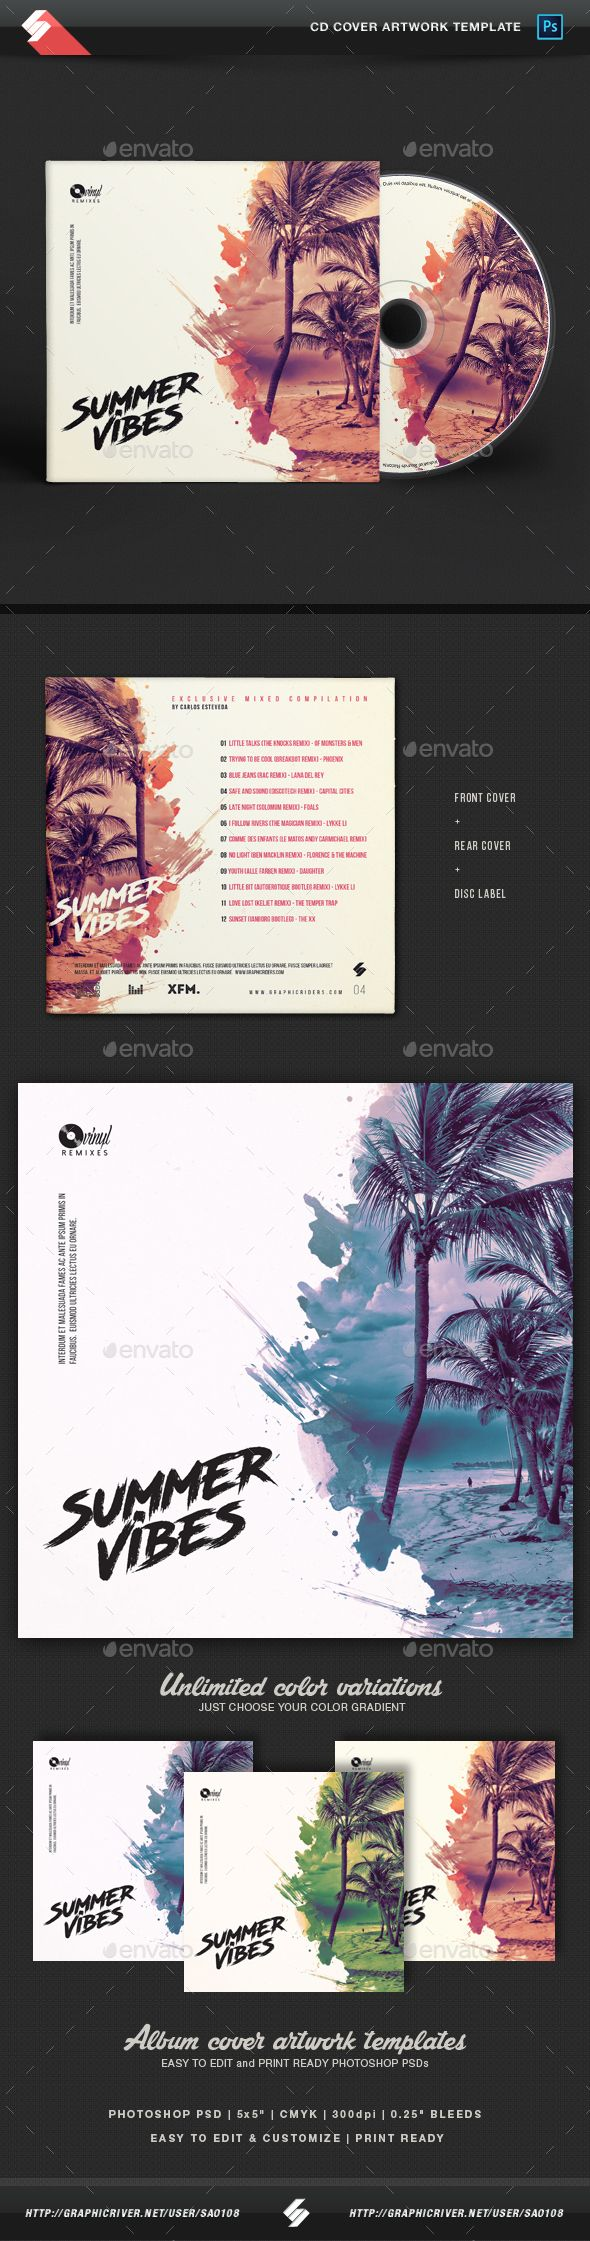 Best 25 Cd cover ideas – Psd Album Cover Template